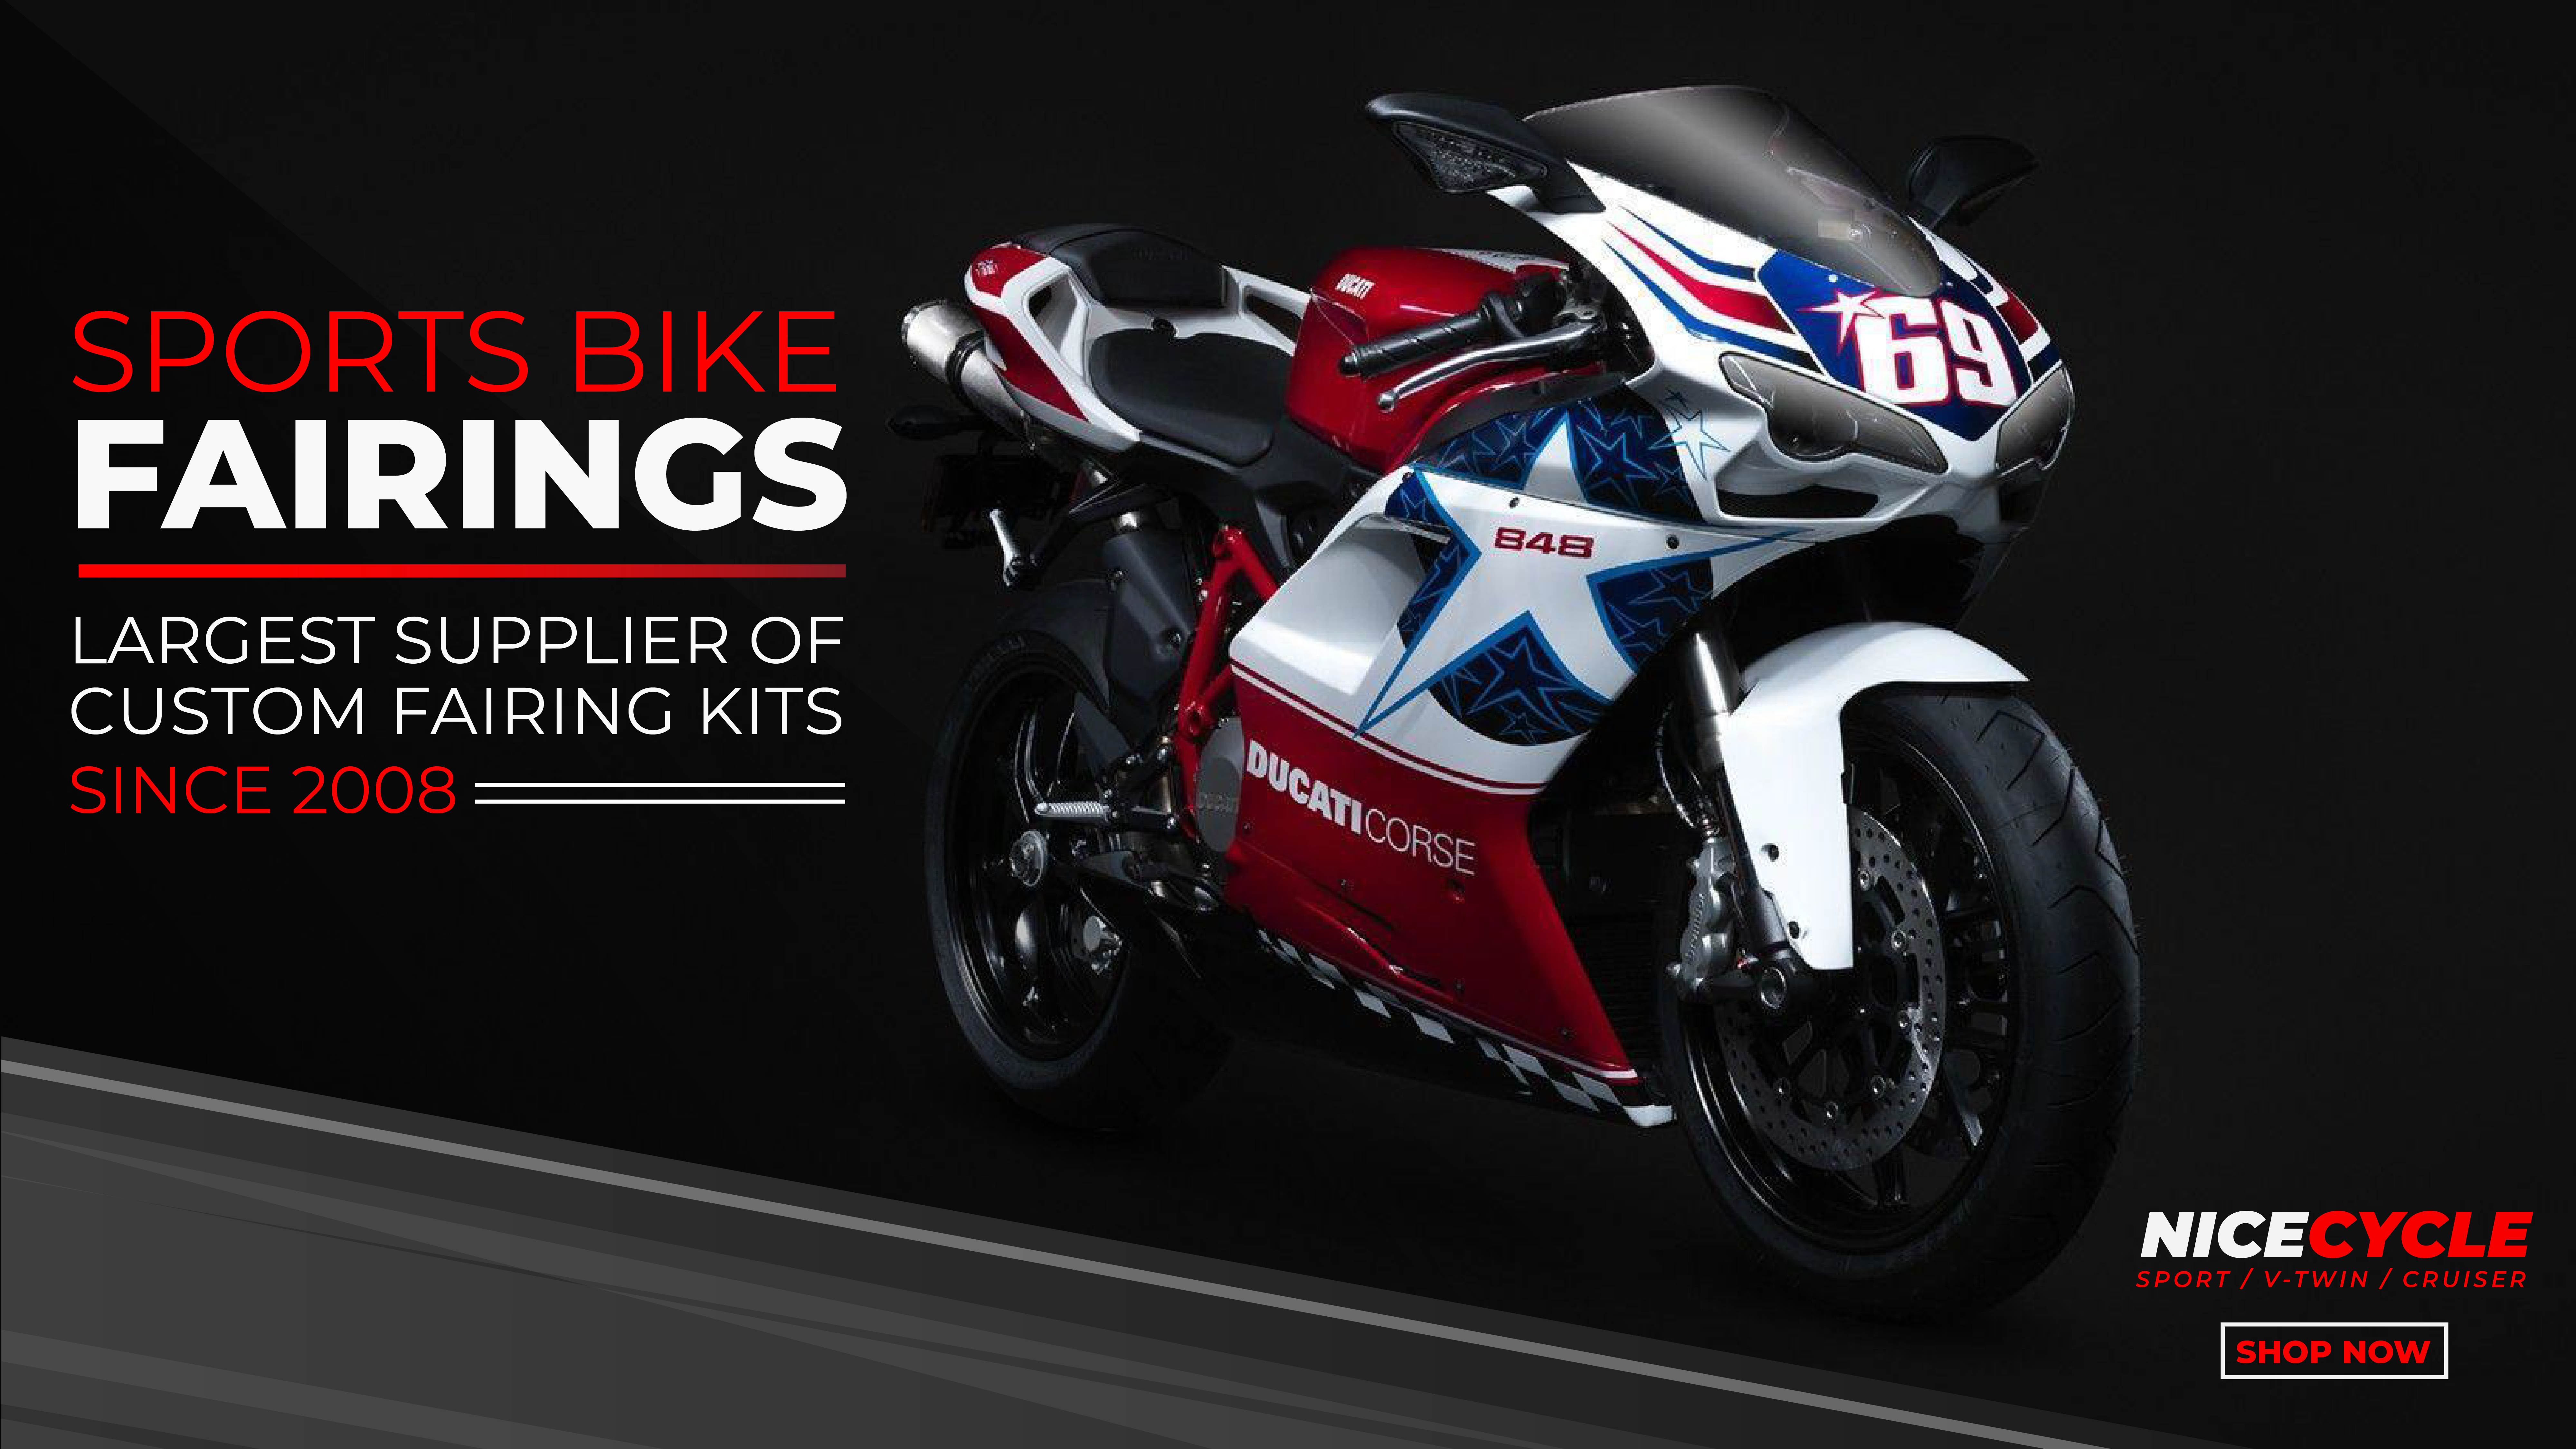 Motorcycle Fairings And Fairing Kits And Motorcycle Parts And Accessories